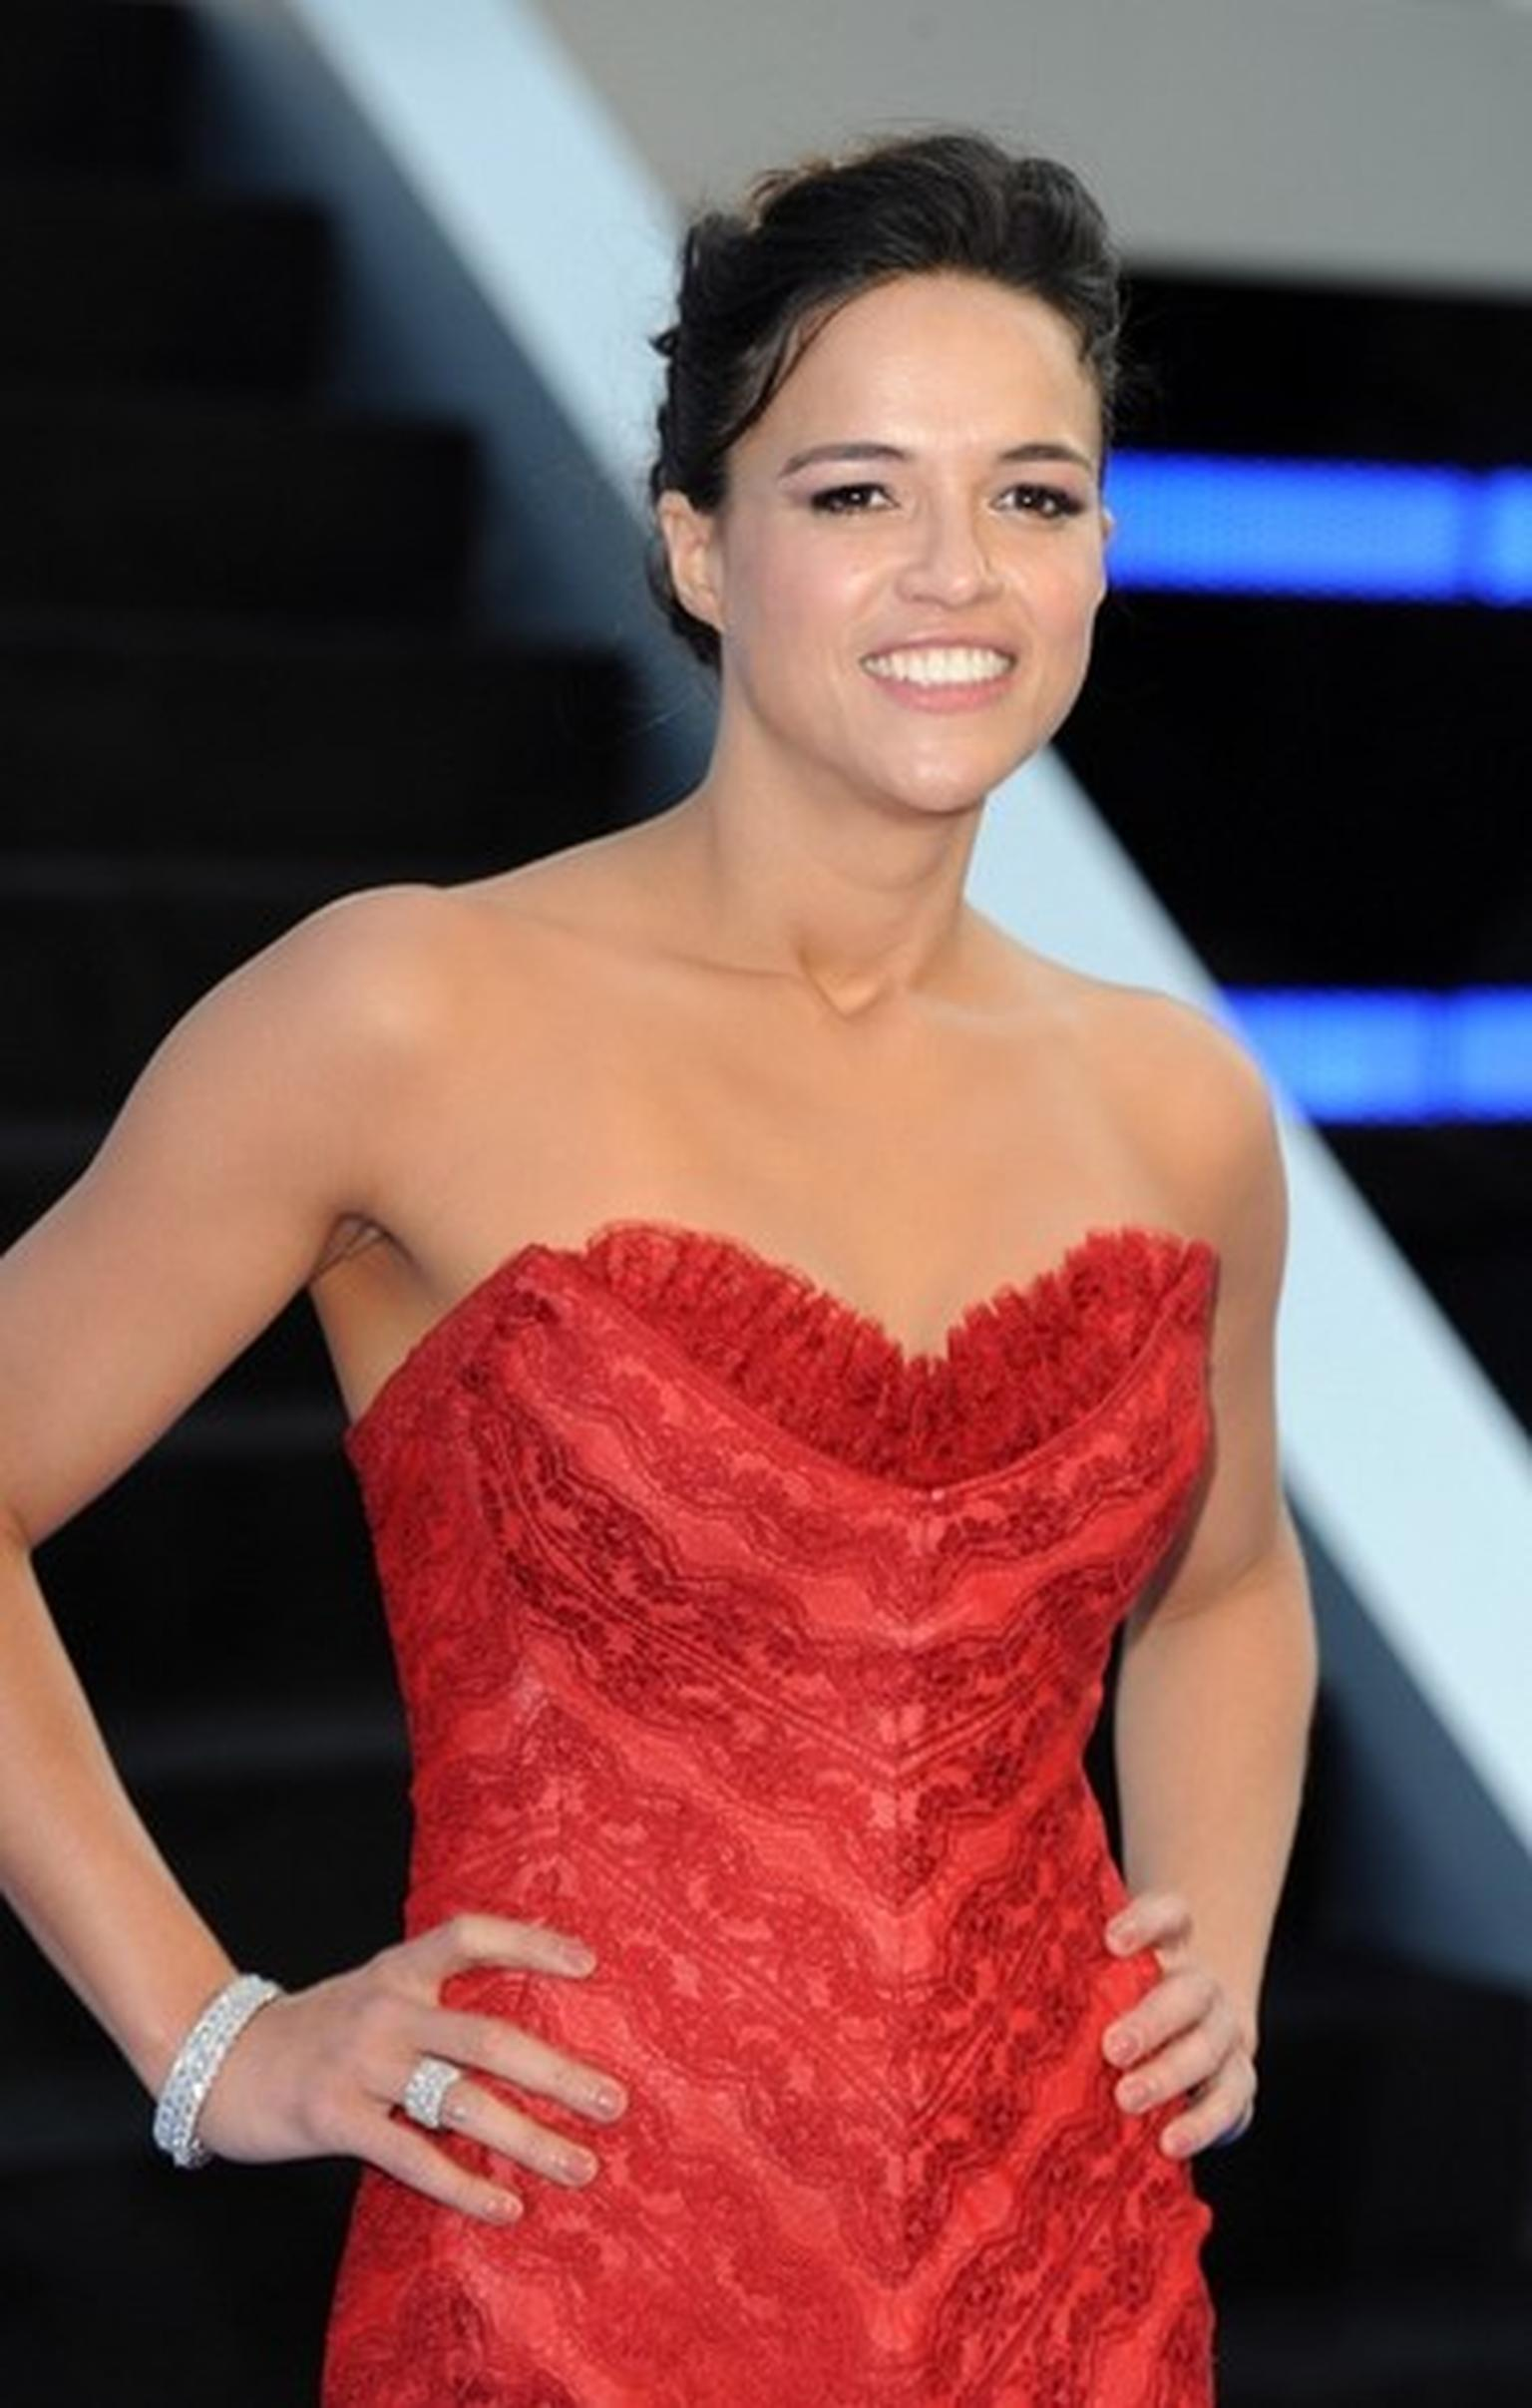 Michelle Rodriguez Fast Furious 6 Premieres 5oolnmhp5l5l Jpg